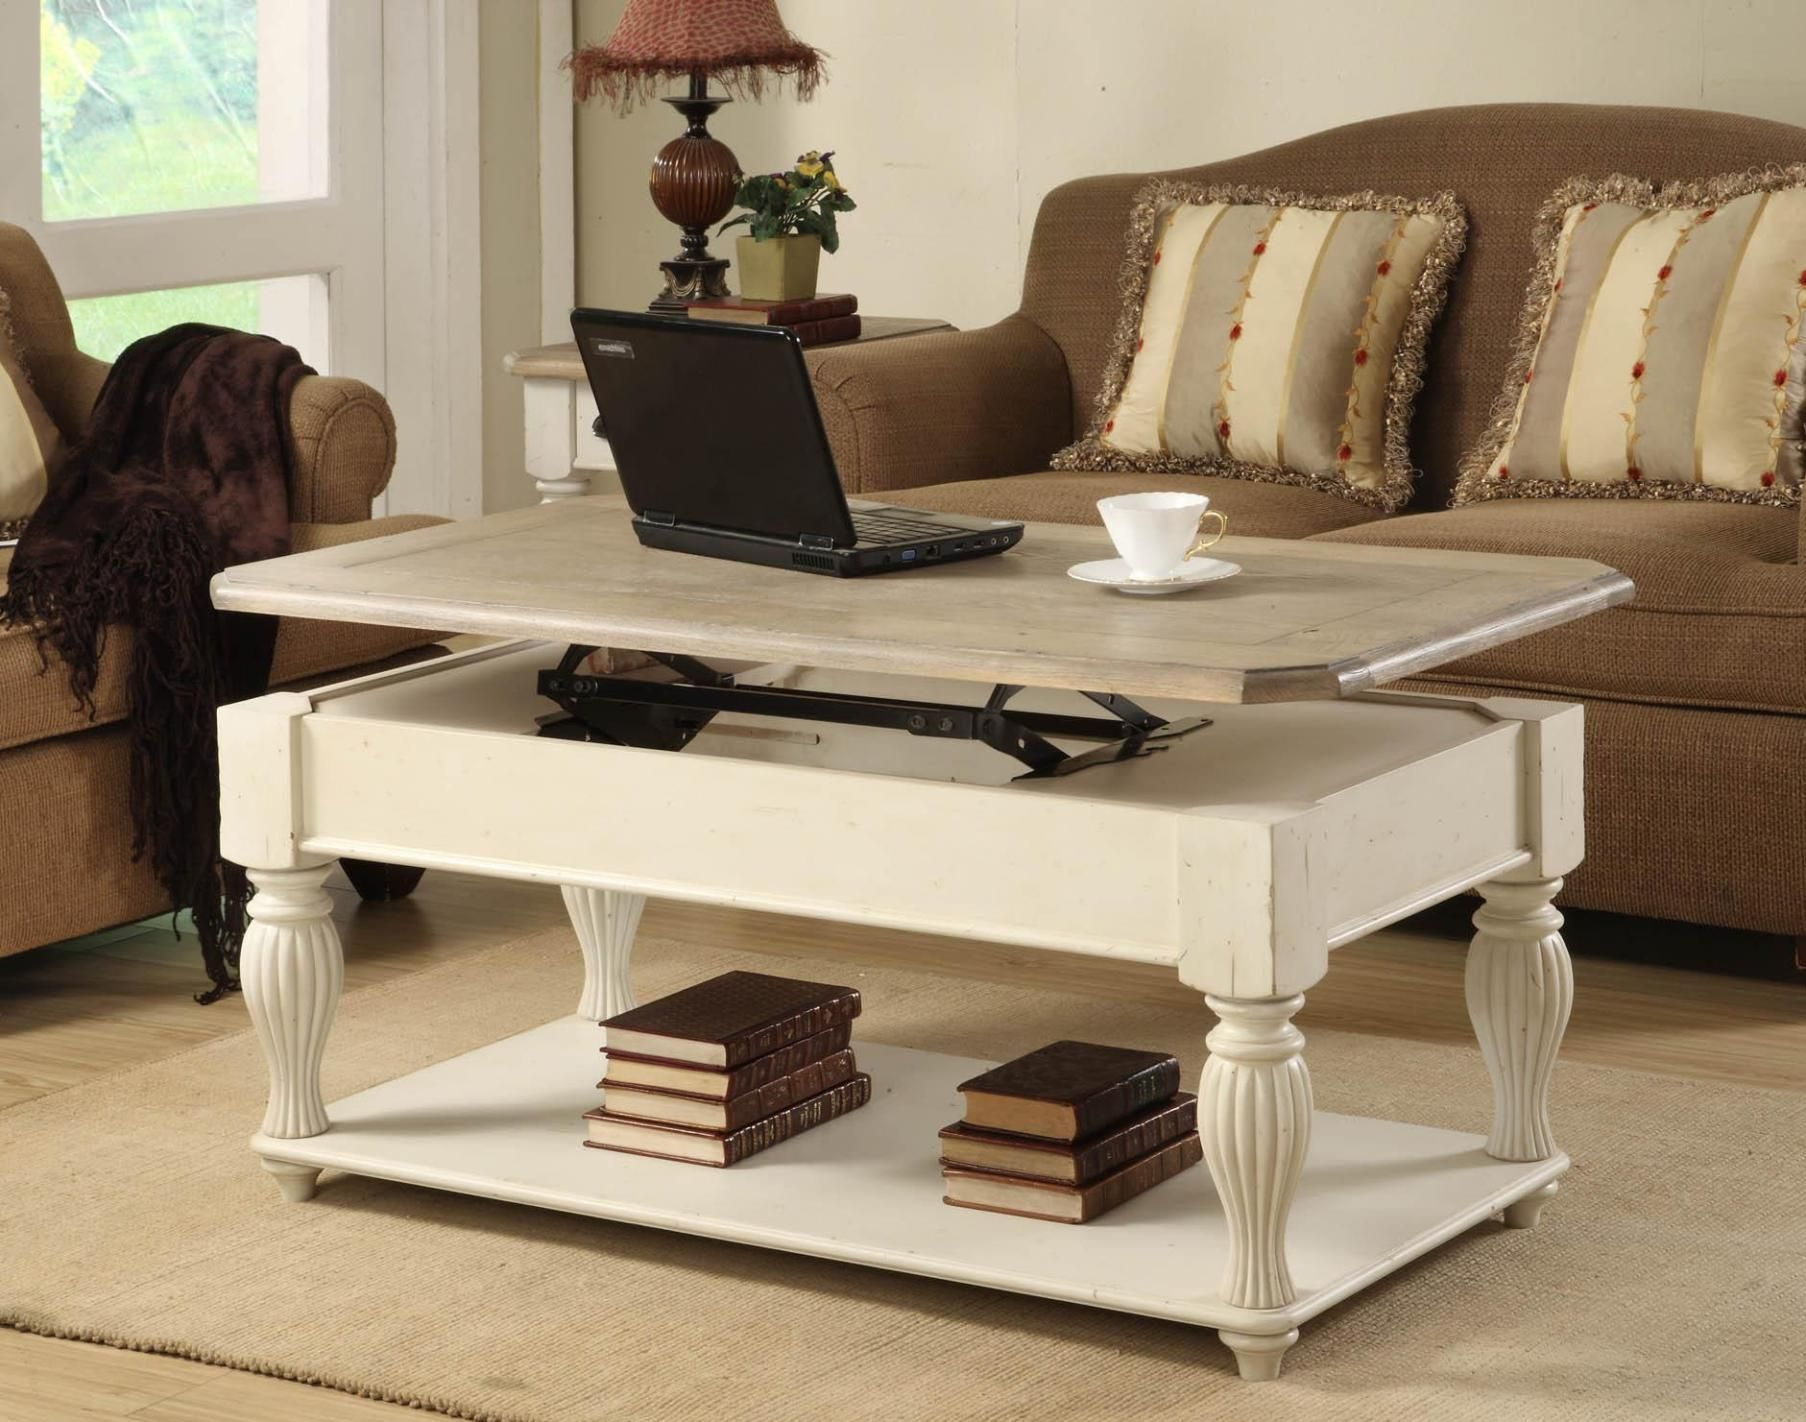 Unique Adjustable Coffee Table For Modern Living Room Furniture Design Adjustable Heig With Images Coffee Table Rectangle Sofa Table With Storage Living Room Coffee Table